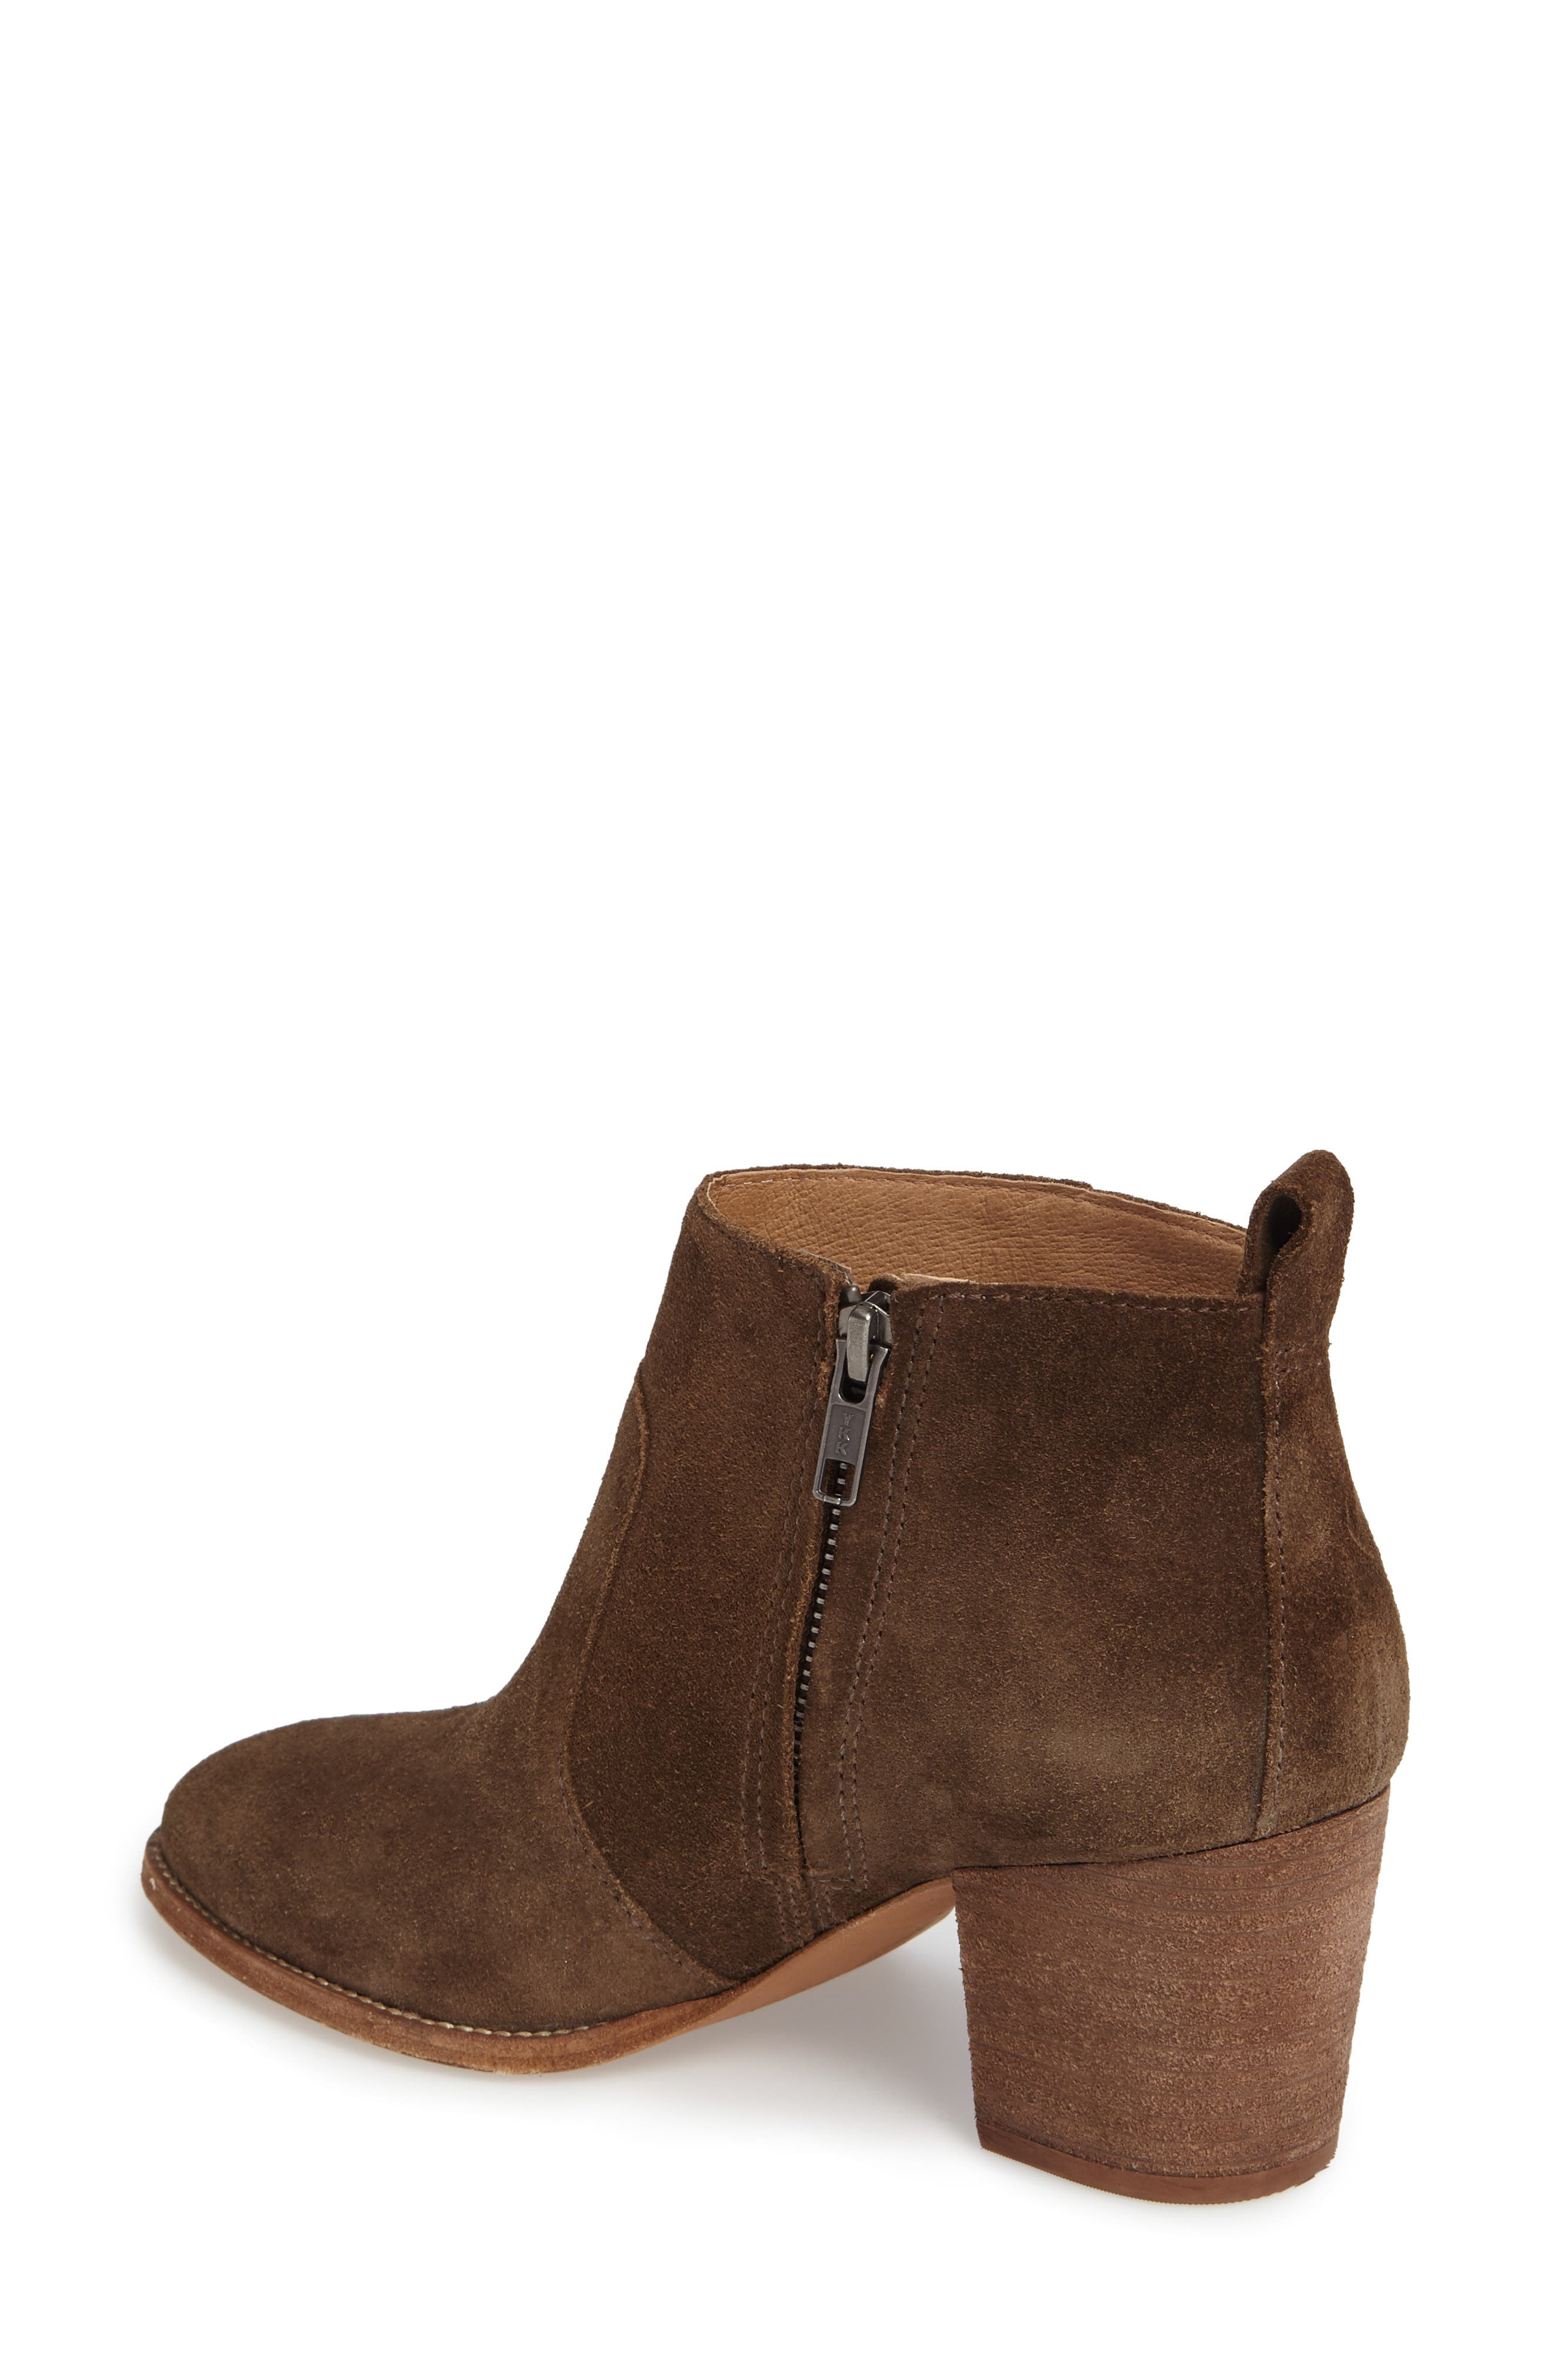 Brenner Bootie,                             Alternate thumbnail 2, color,                             Mink Suede